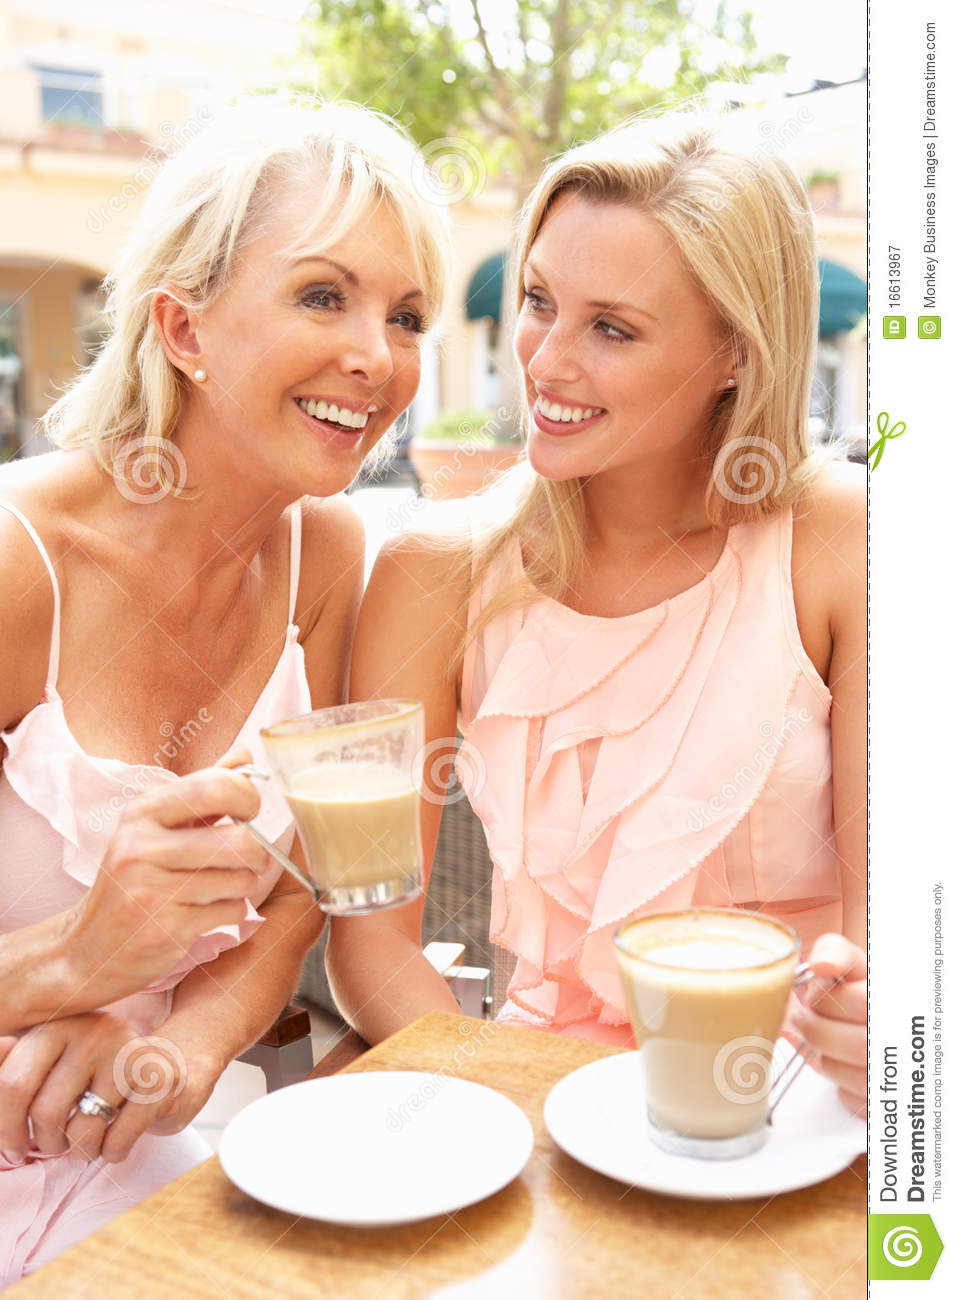 Two Woman In Cup 107